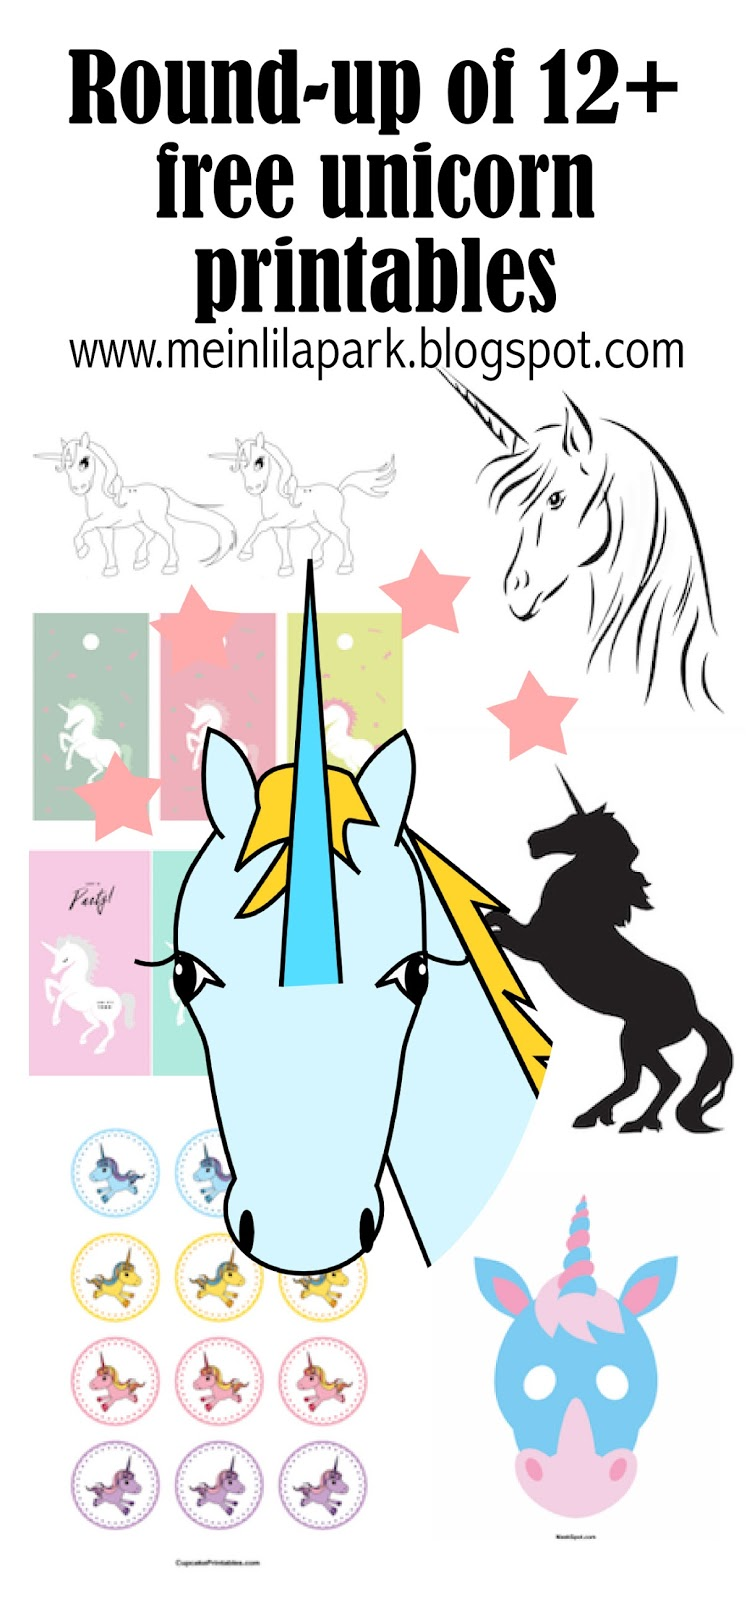 Witty image in free unicorn printable